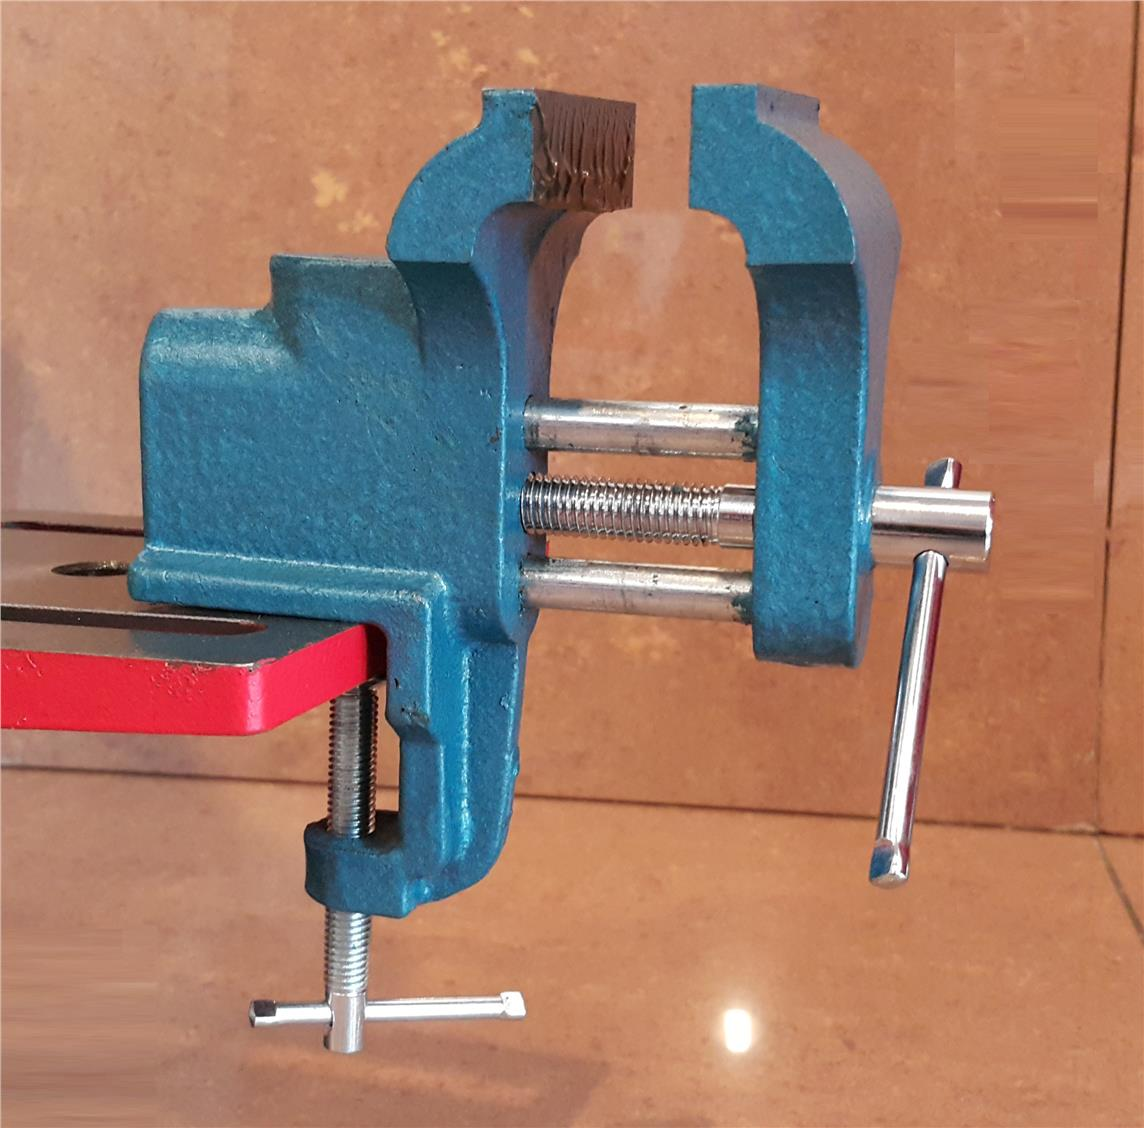 63mm Bench Vise ID119431